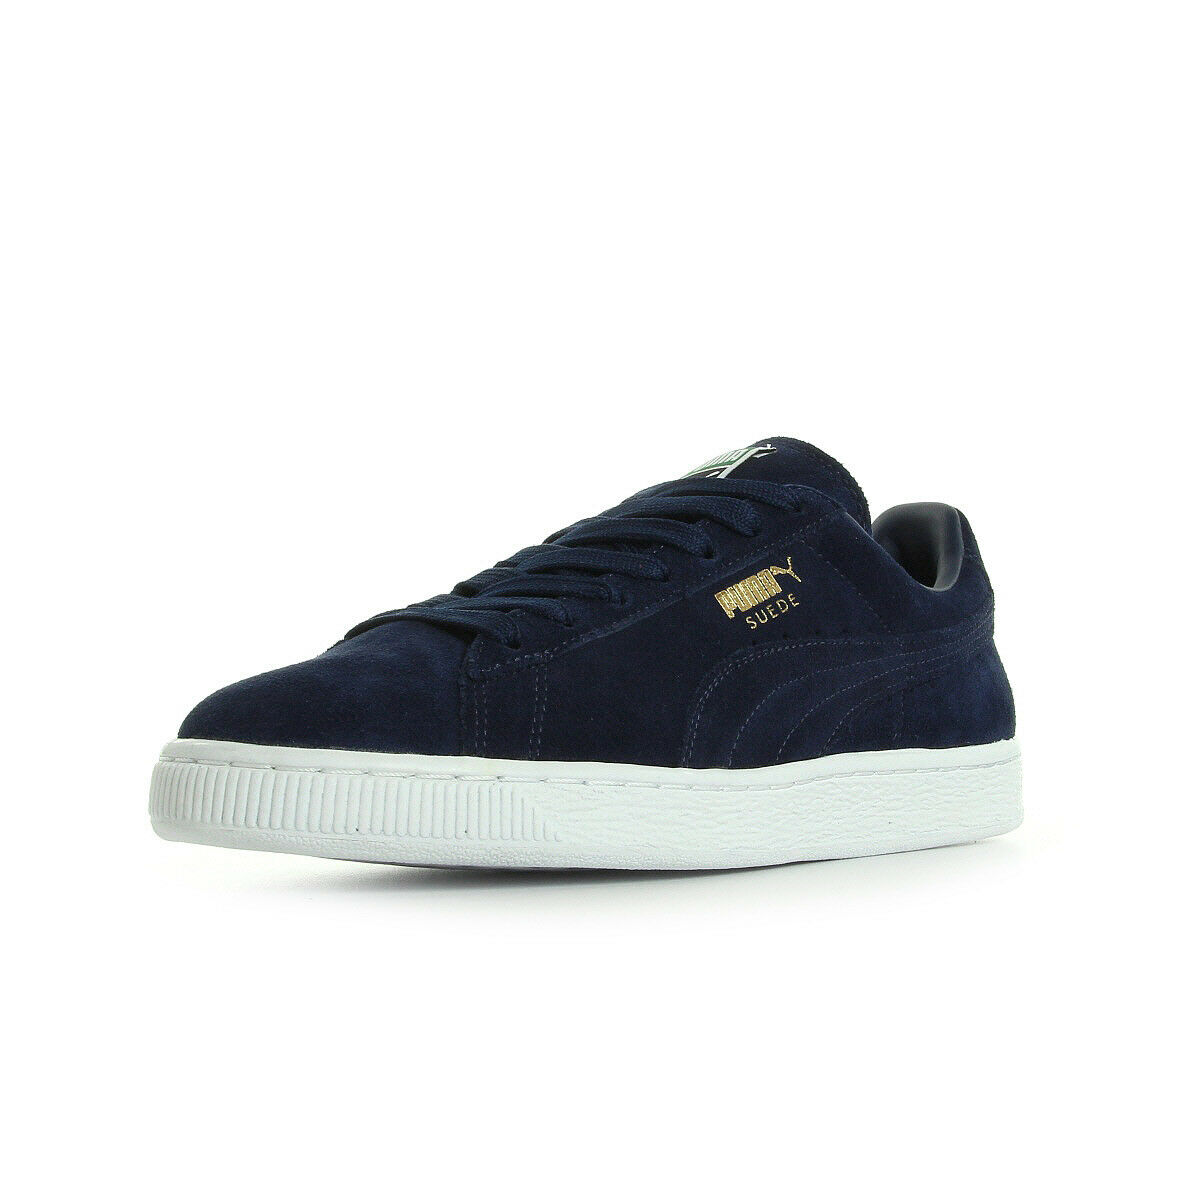 Chaussures Baskets Puma unisexe Suede Classic + taille Bleu marine Bleue Cuir